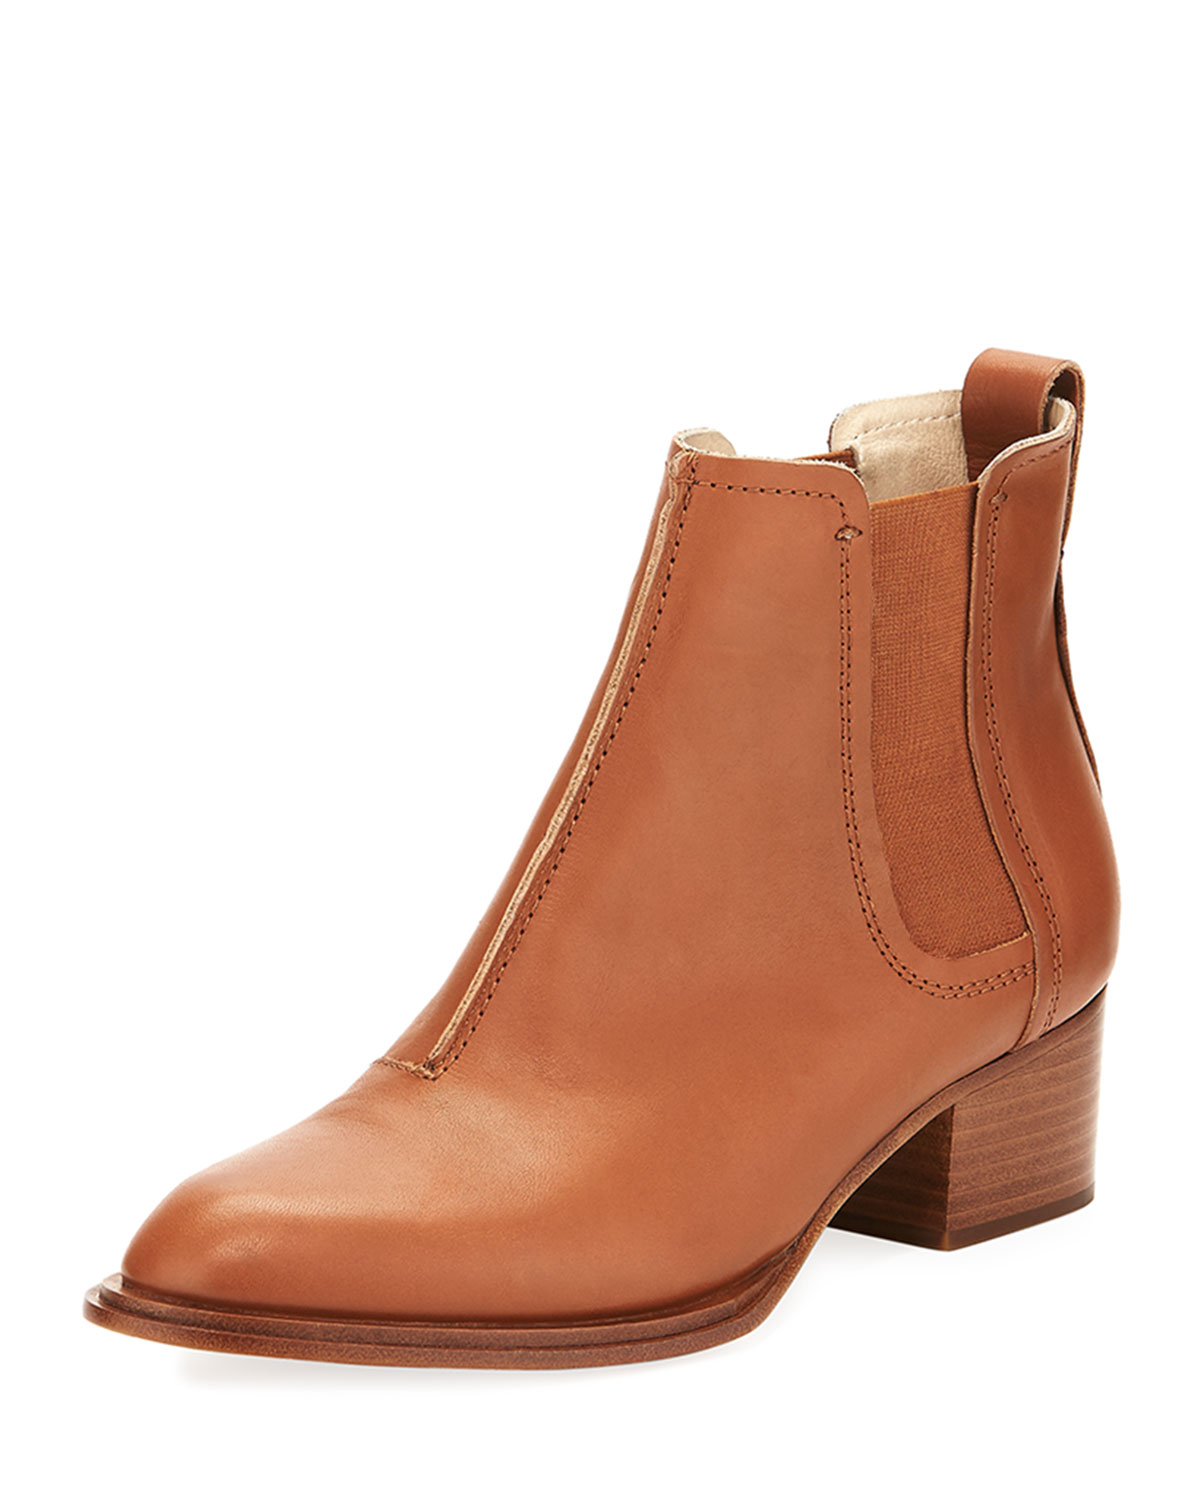 2bcd9af9da Rag & Bone Walker II Leather Chelsea Boots, Tan | Neiman Marcus